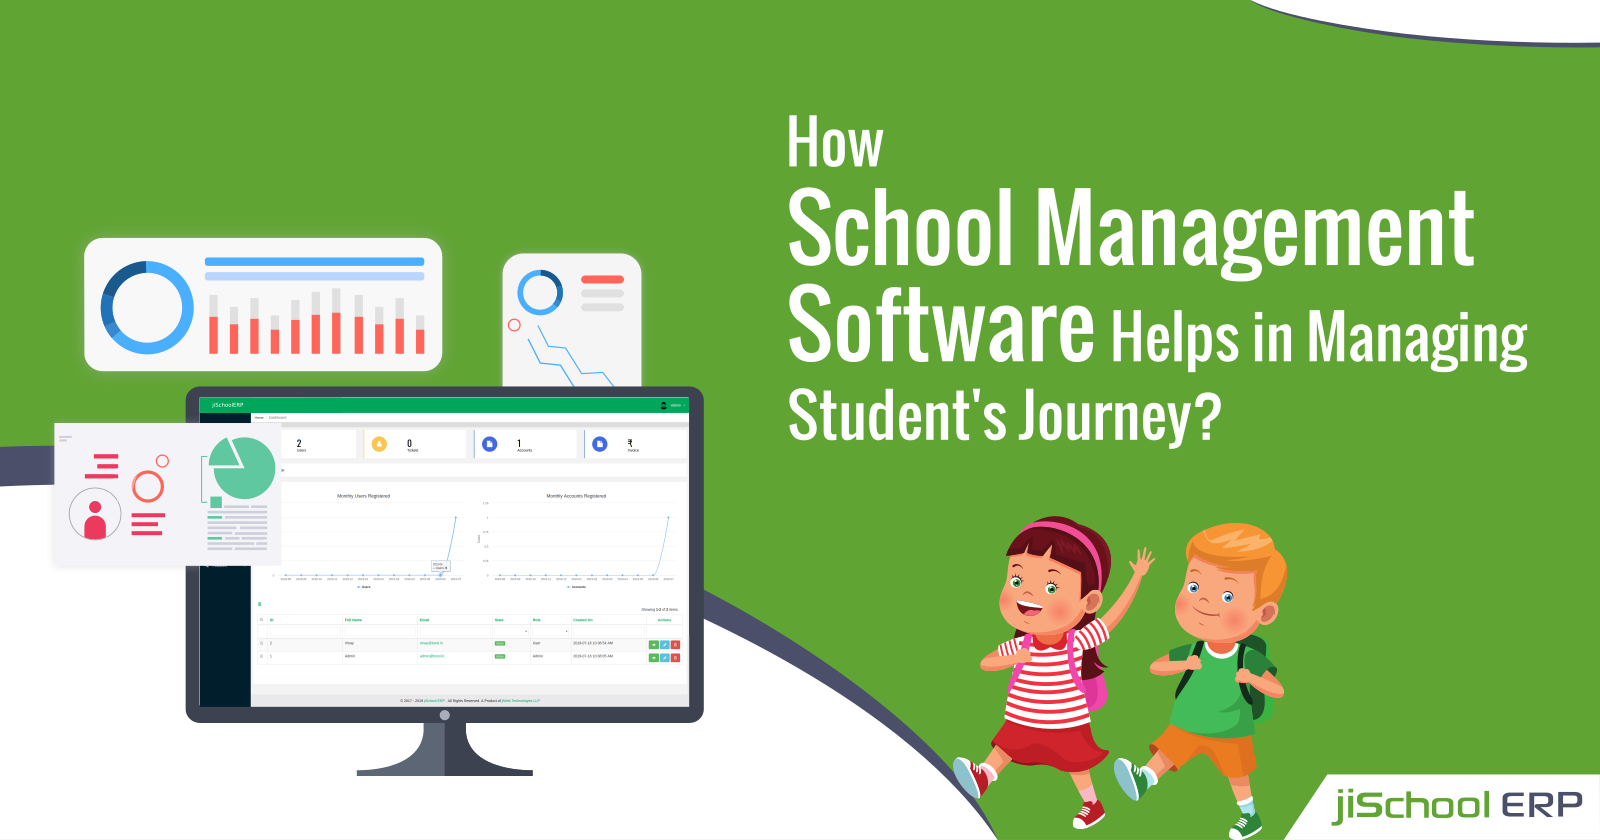 How School Management Software Helps in Managing Student's Journey?